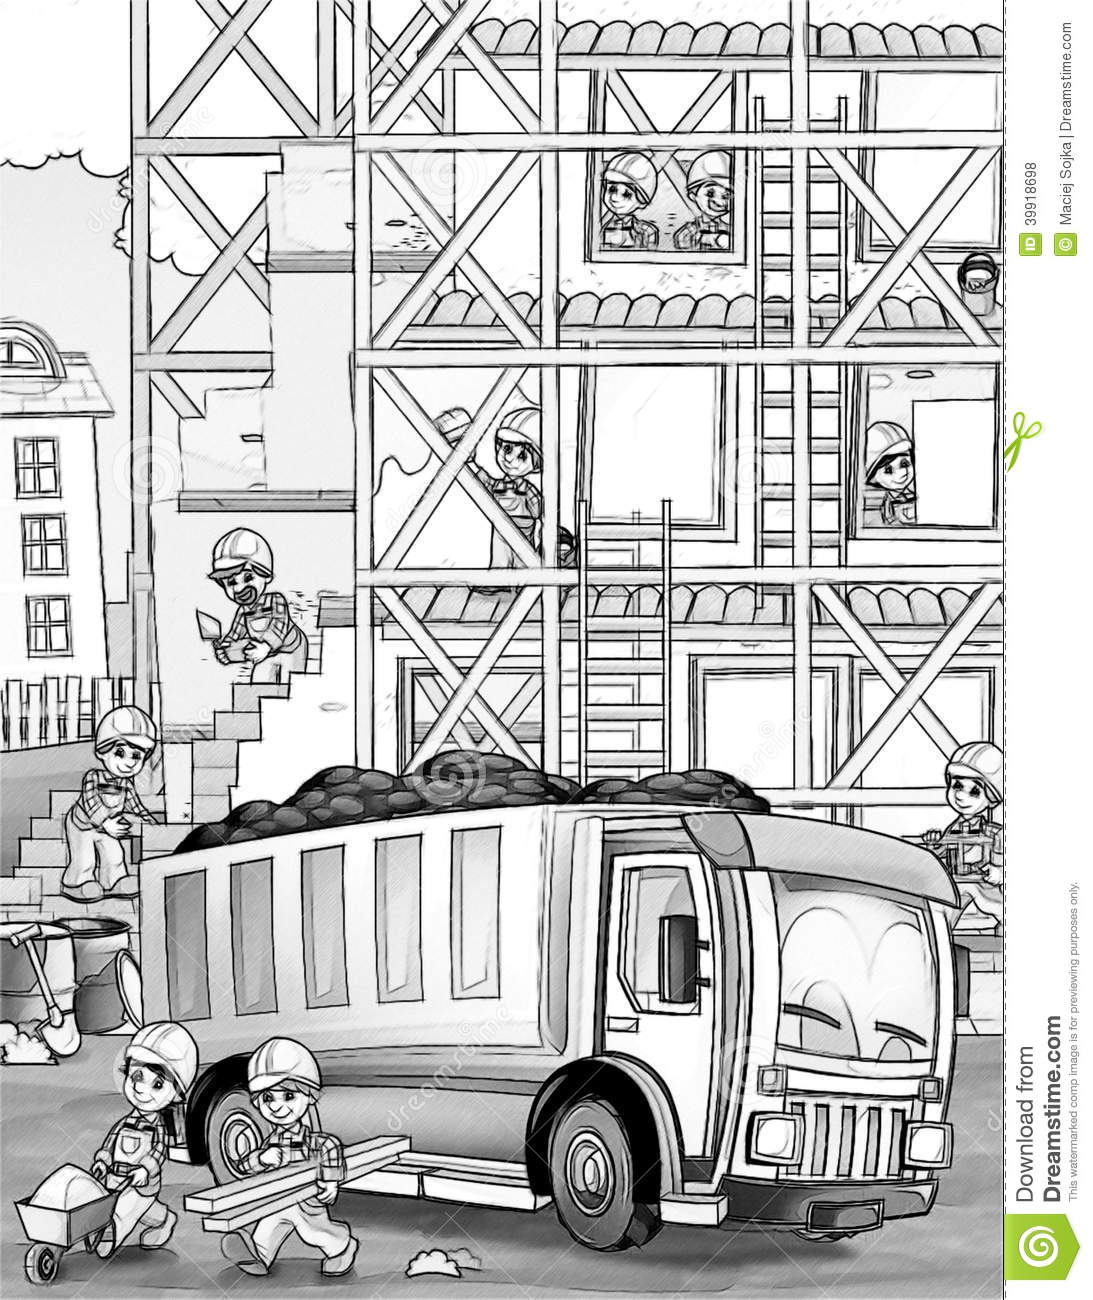 construction site coloring page stock illustration image 39918698